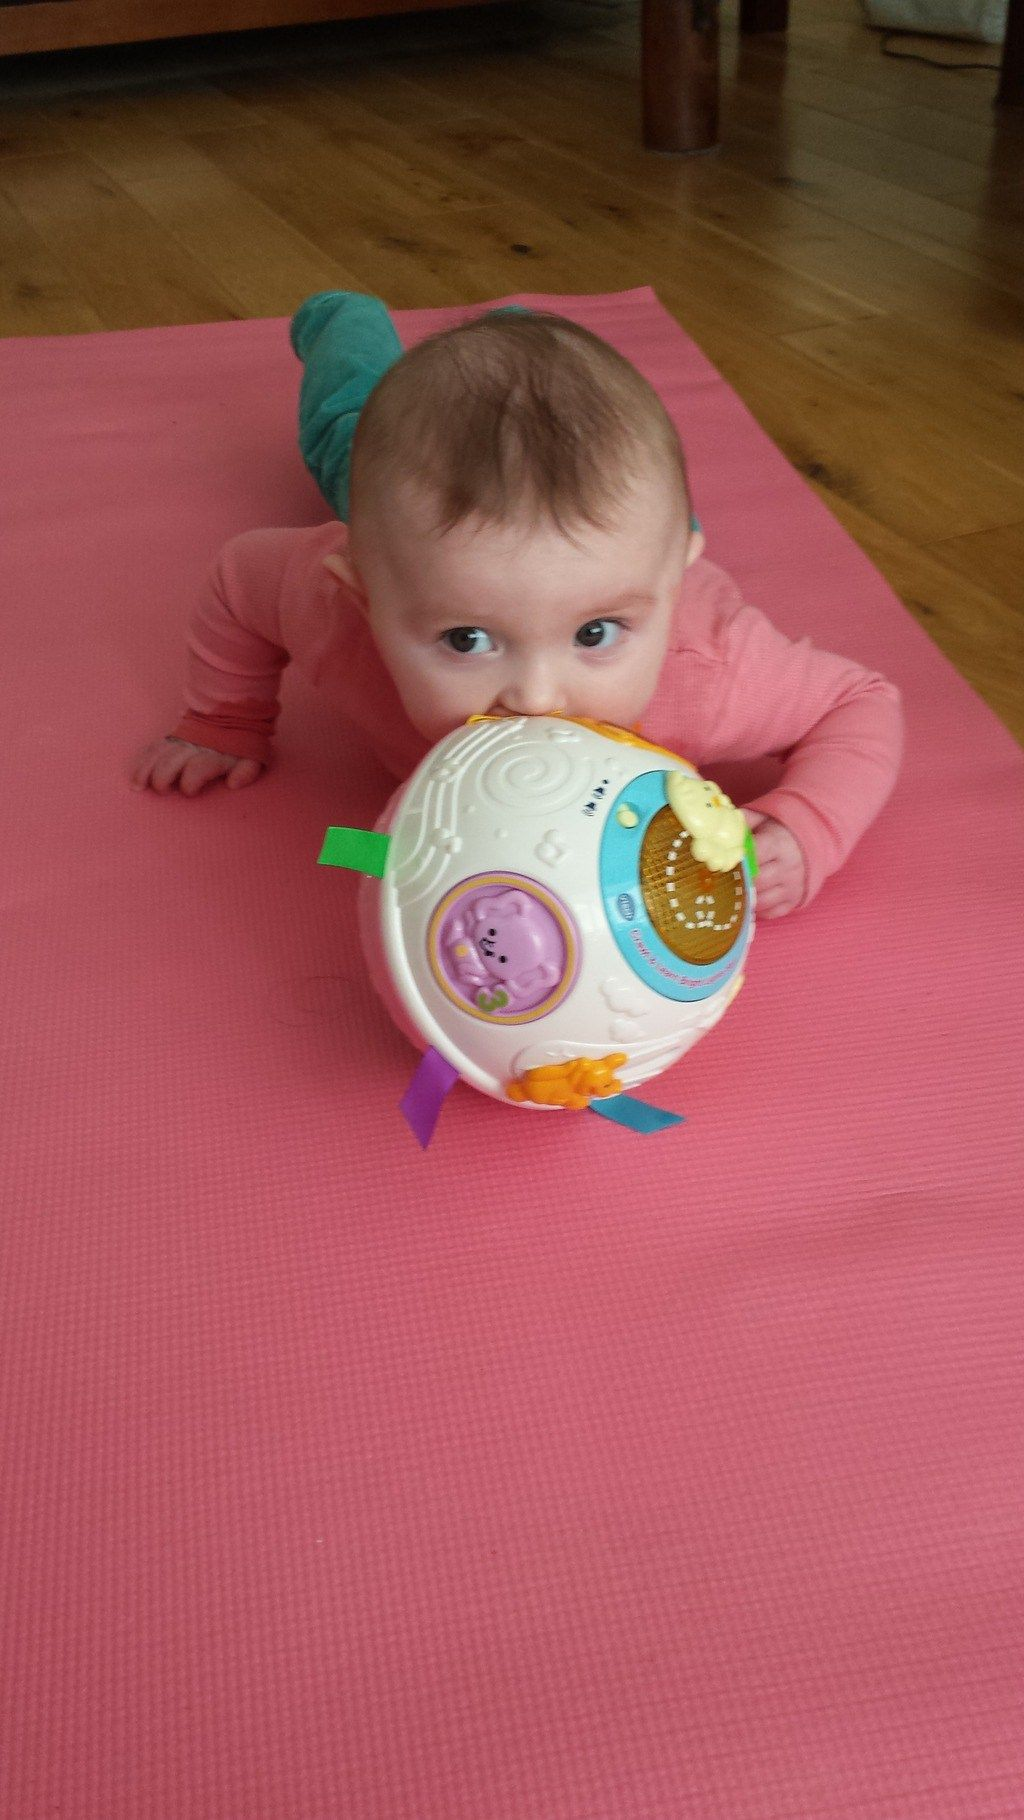 Vtech Crawl Learn Ball Best Toy For 6 Month Old Best Online Toy Shop Crawling Baby Toys Crawling Baby Cool Gifts For Kids